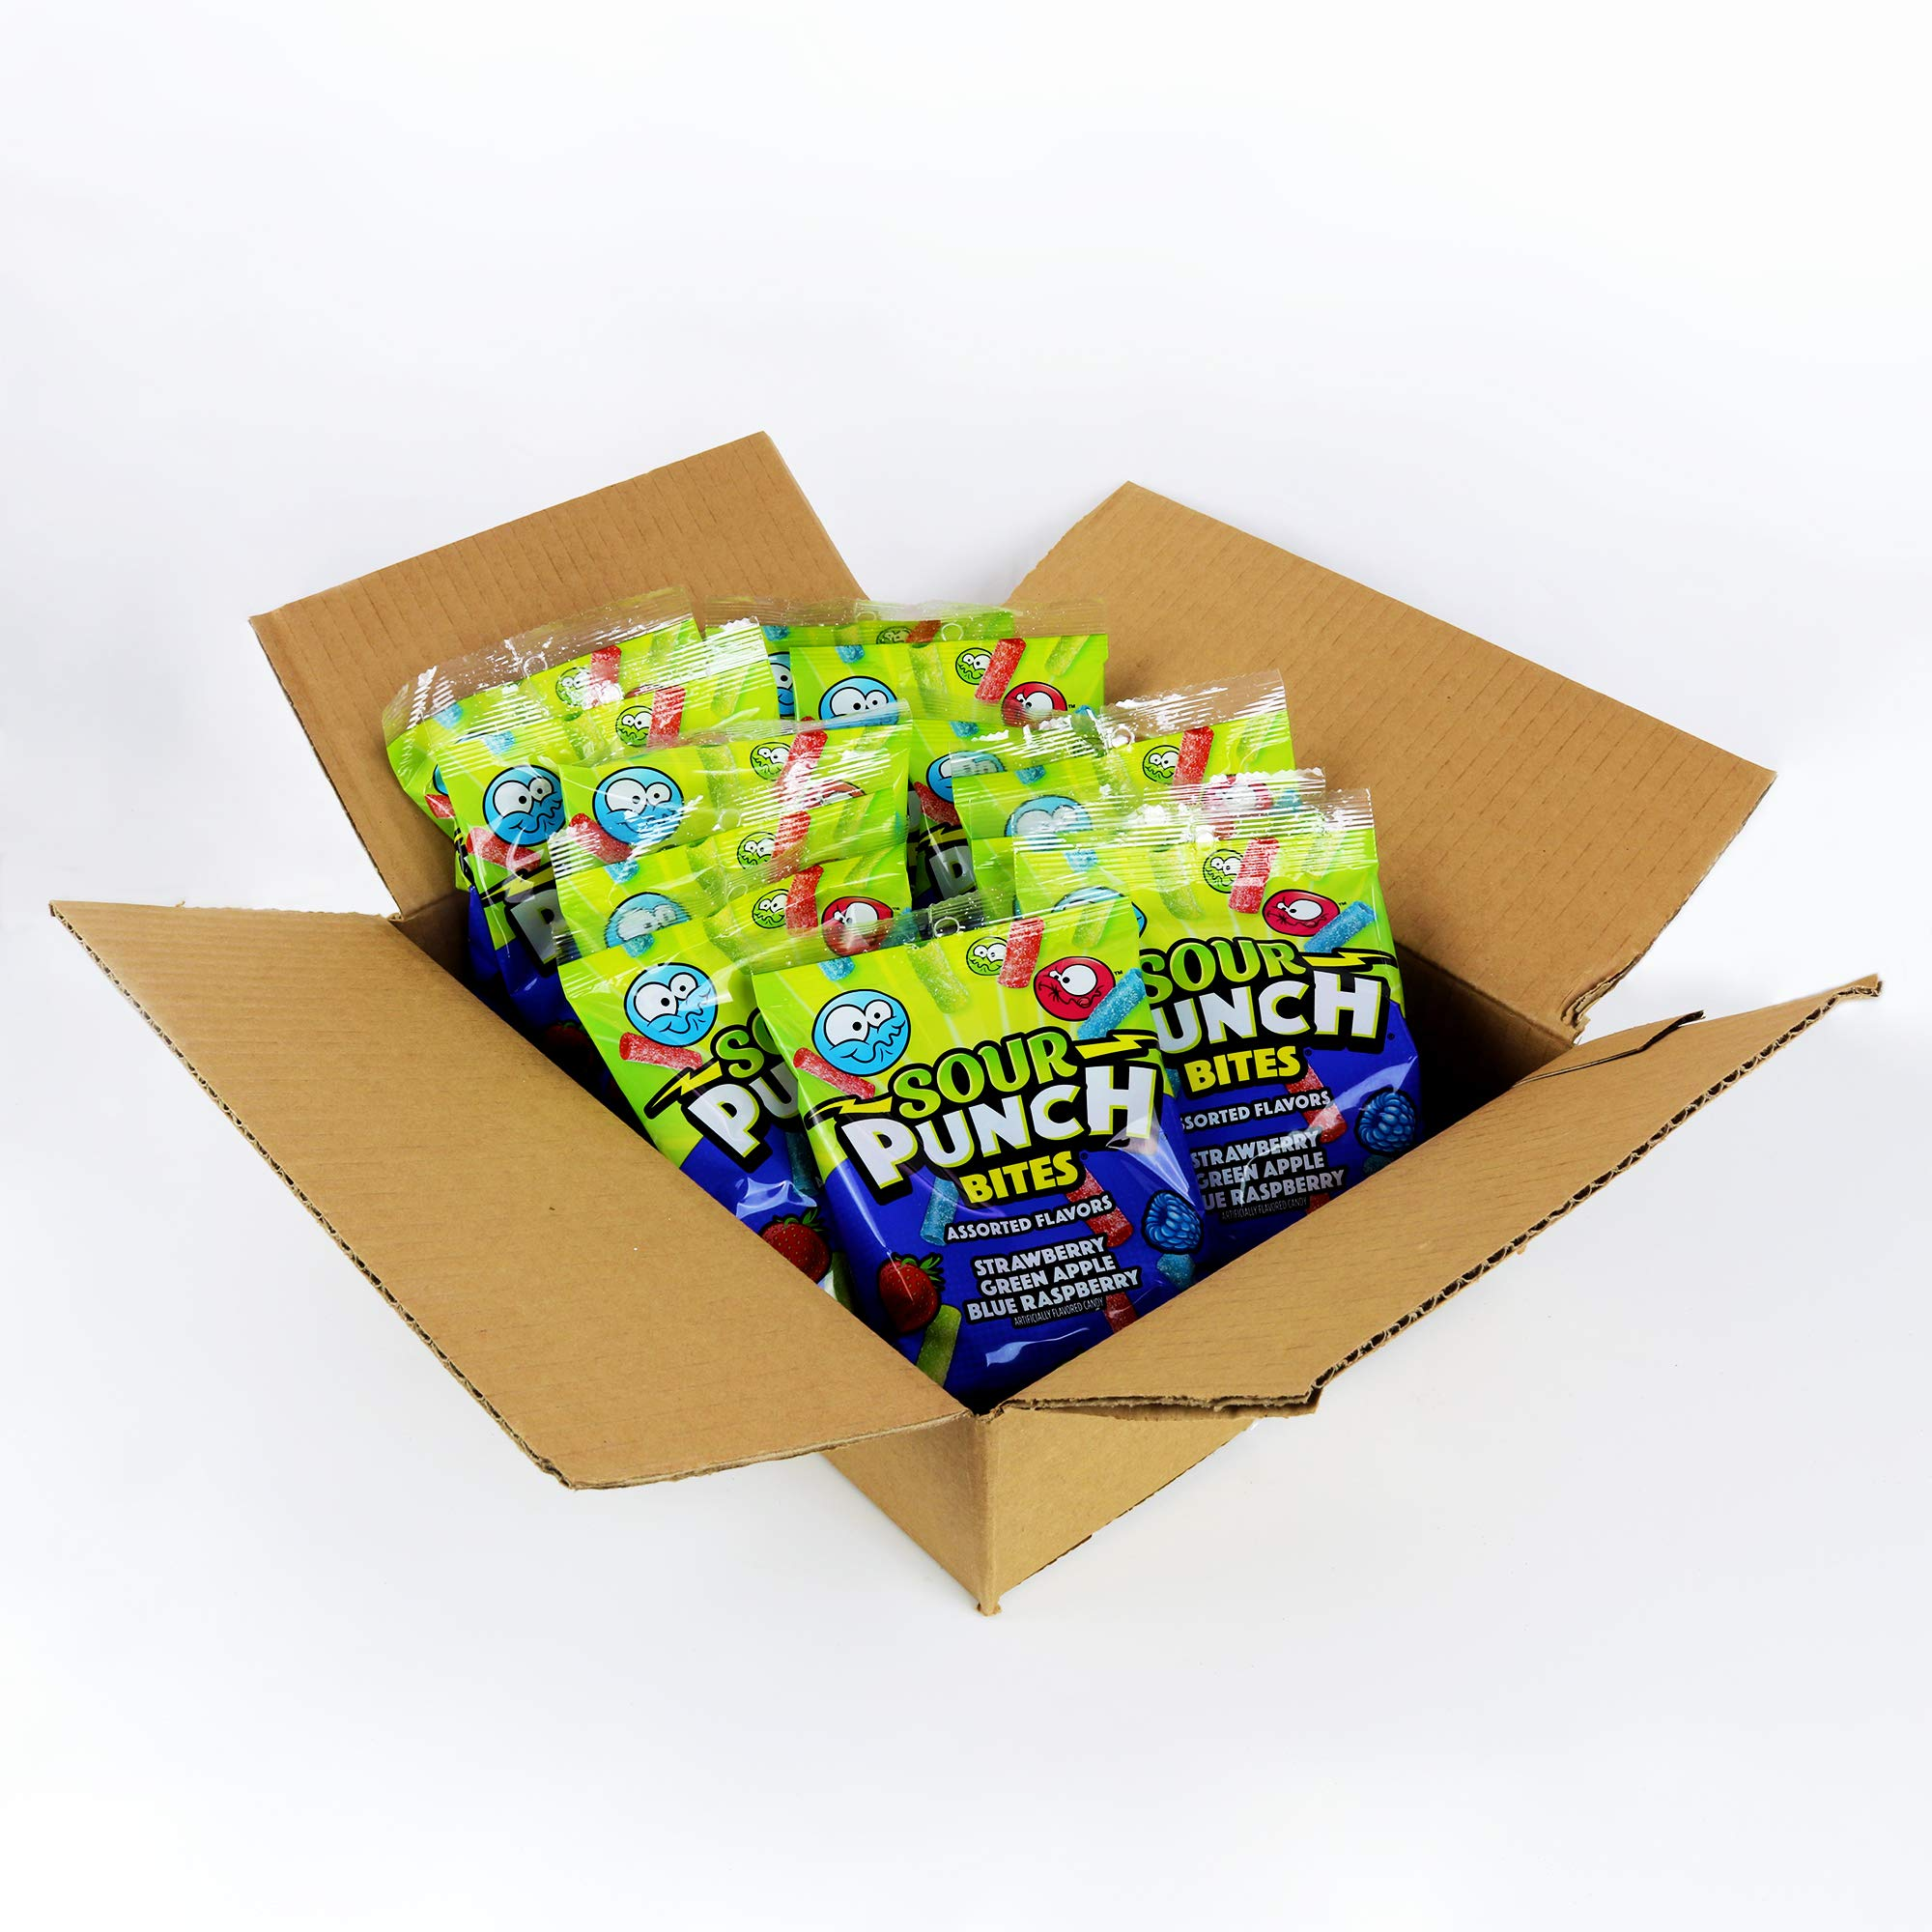 Sour Punch Bites, Assorted Sweet & Sour Fruit Flavors, Chewy Candy, 5oz Bag  (12 Pack)